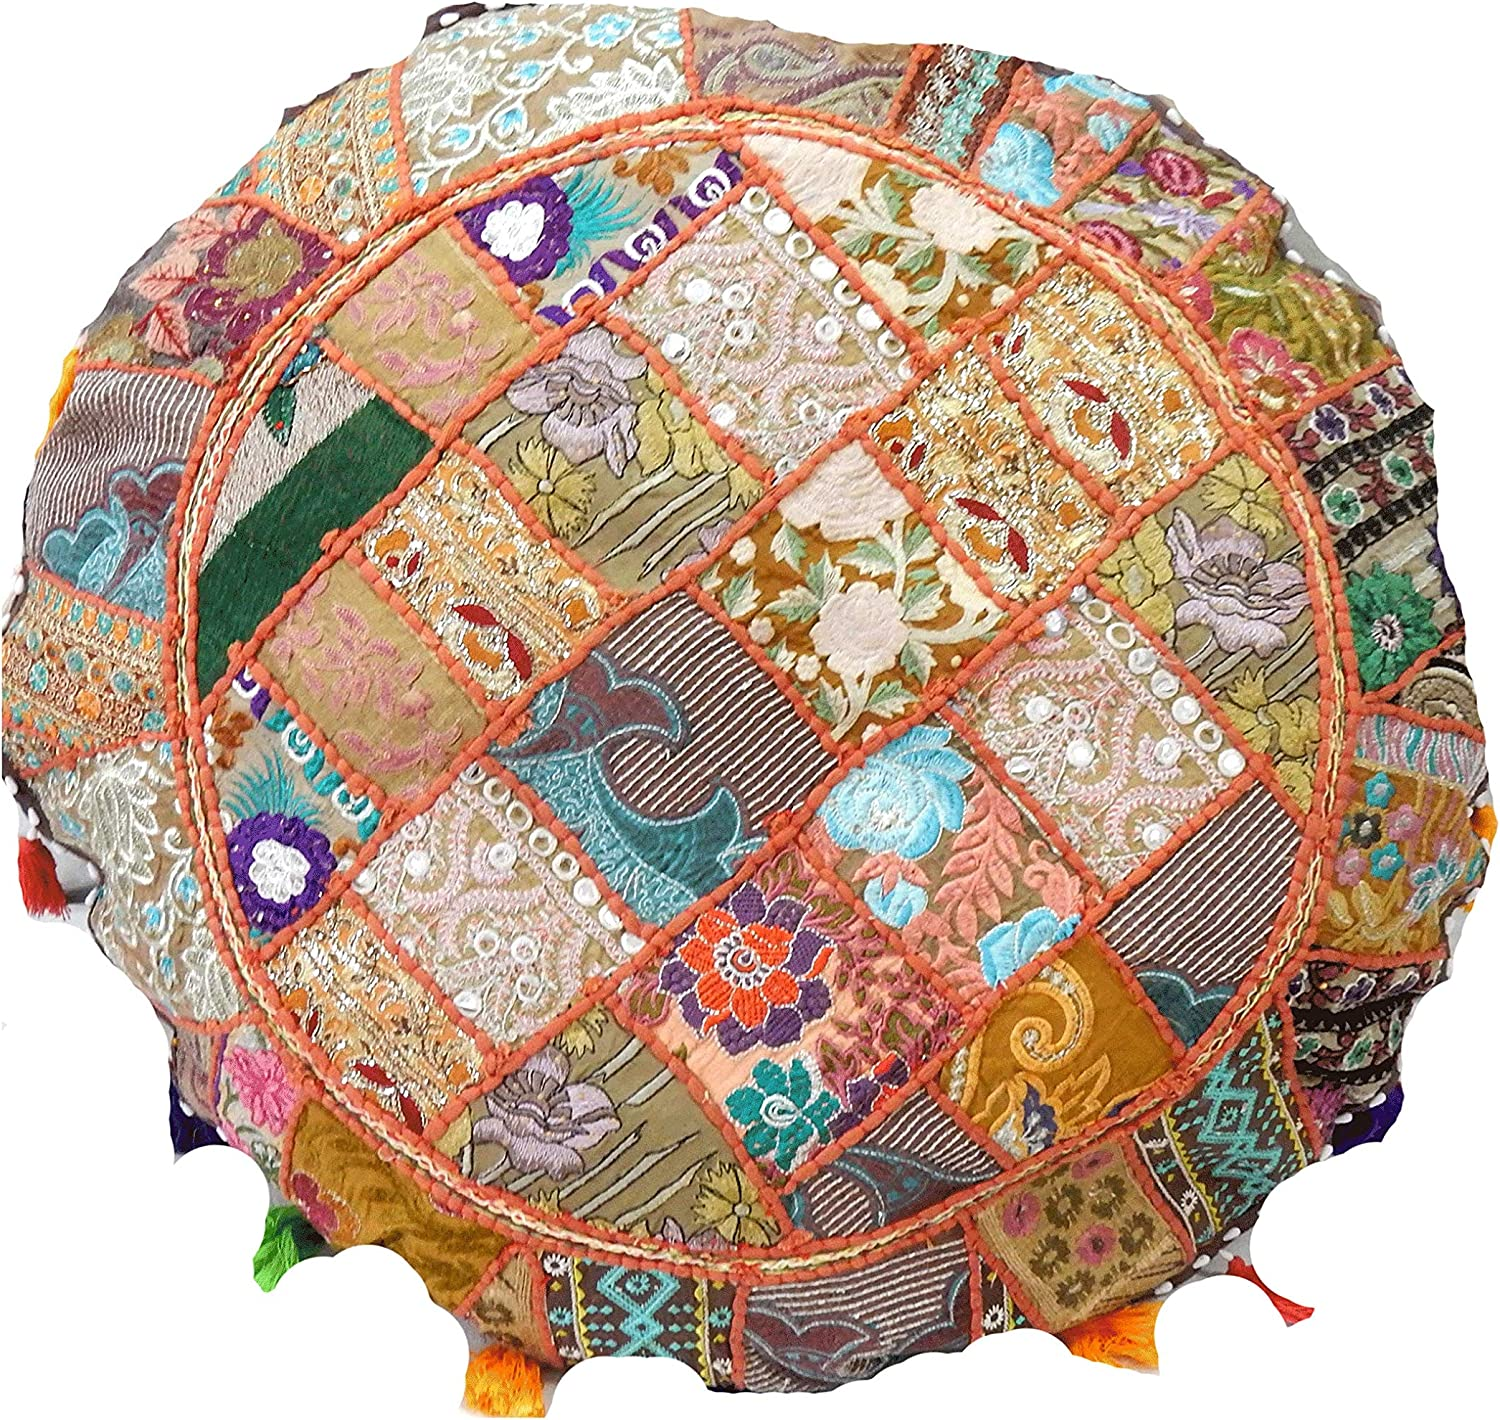 Floor Embroidered Pillow Cushion Round Meditation Cover Indian Patchwork Covers